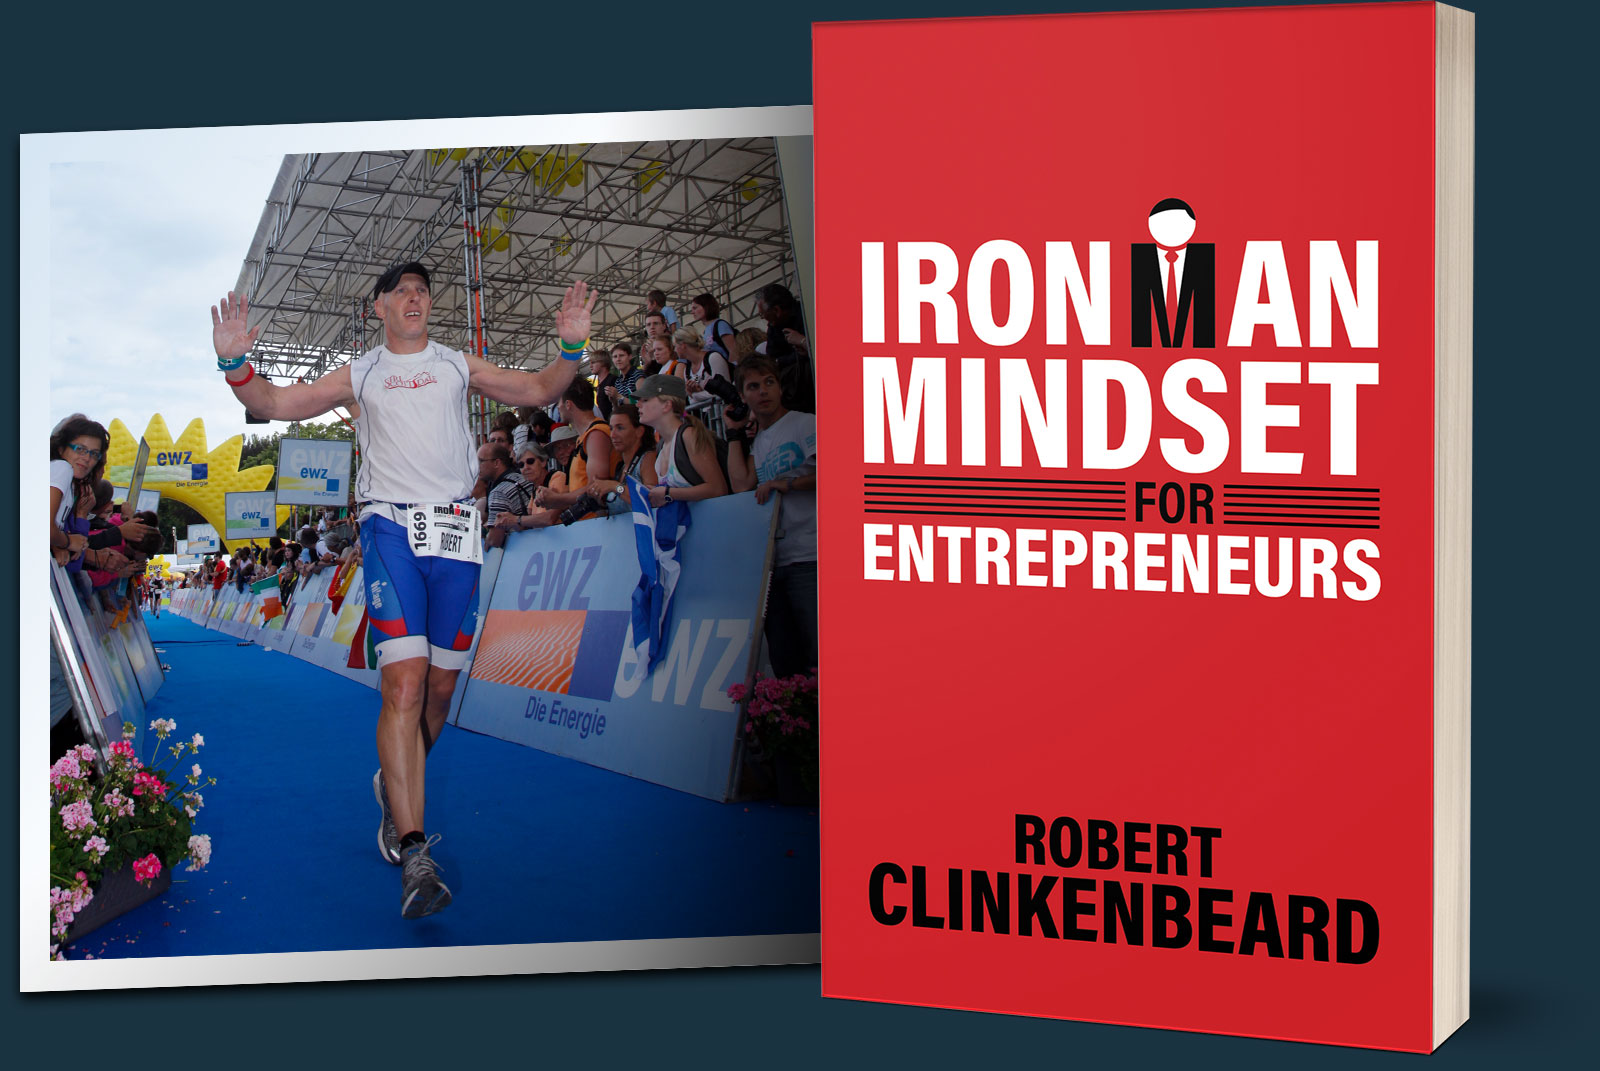 The Ironman Mindset for Entrepreneurs